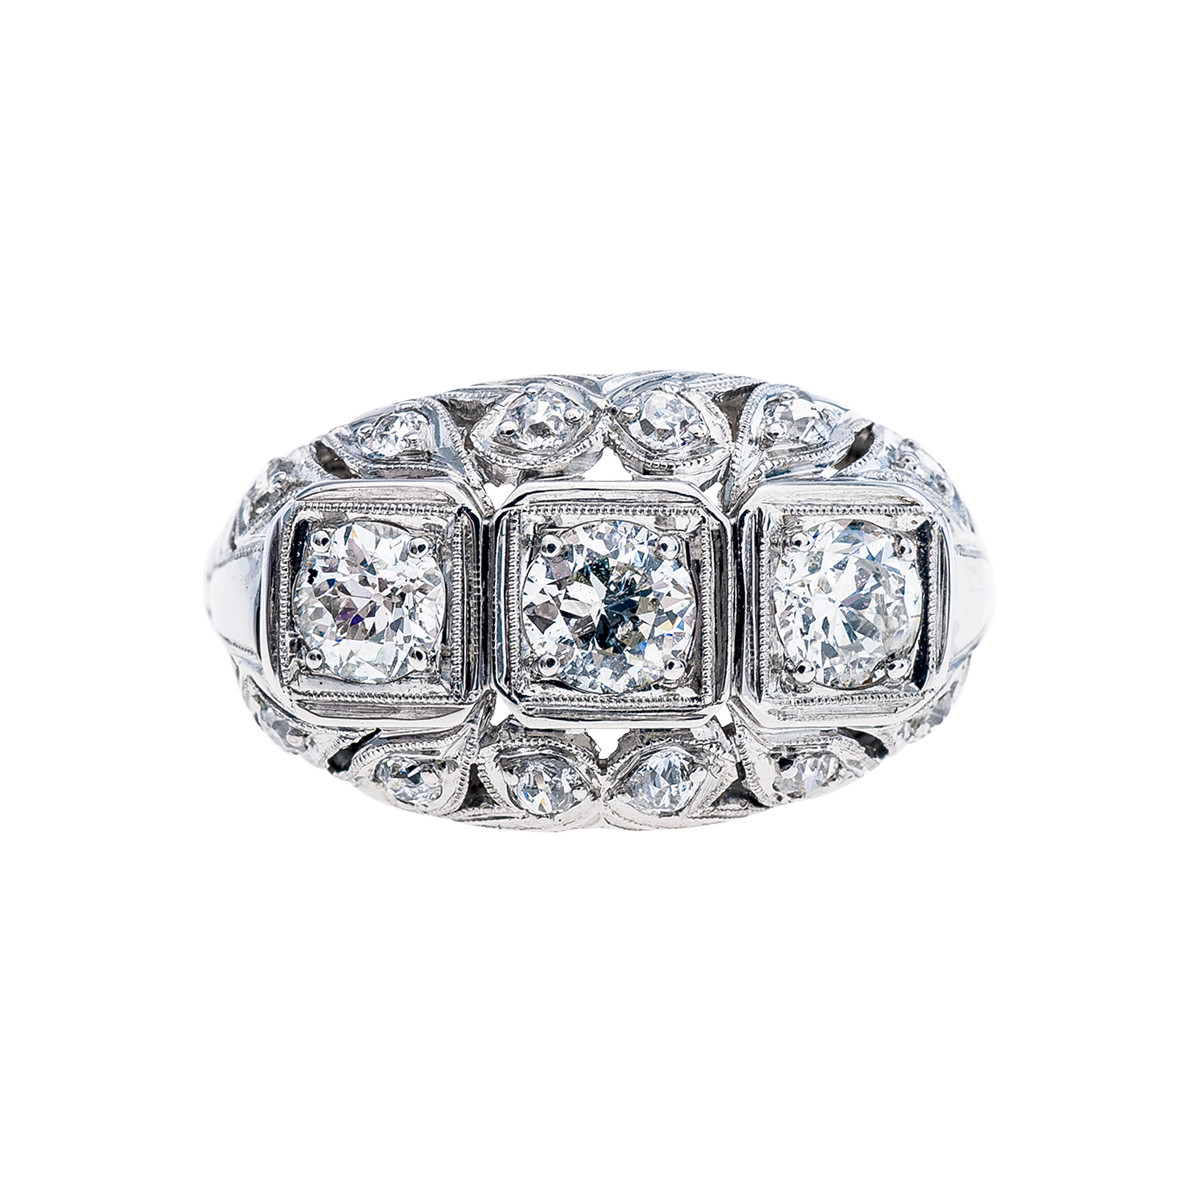 Vintage Art Deco 0.96 CTW Diamond Ring